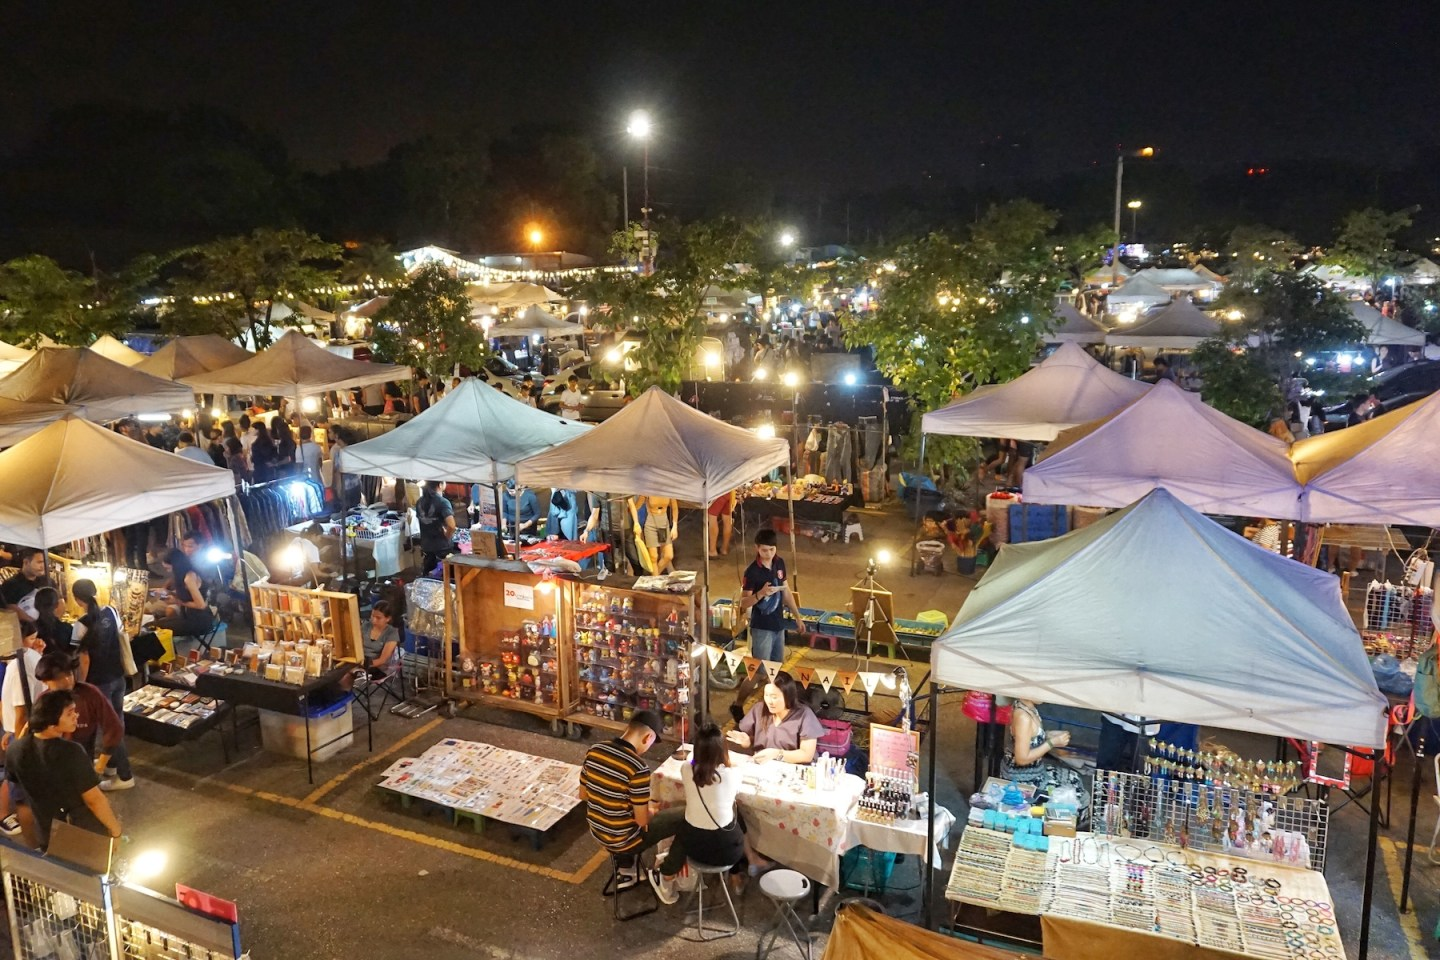 Planning a visit to Chatuchak? Go to JJ Green Instead